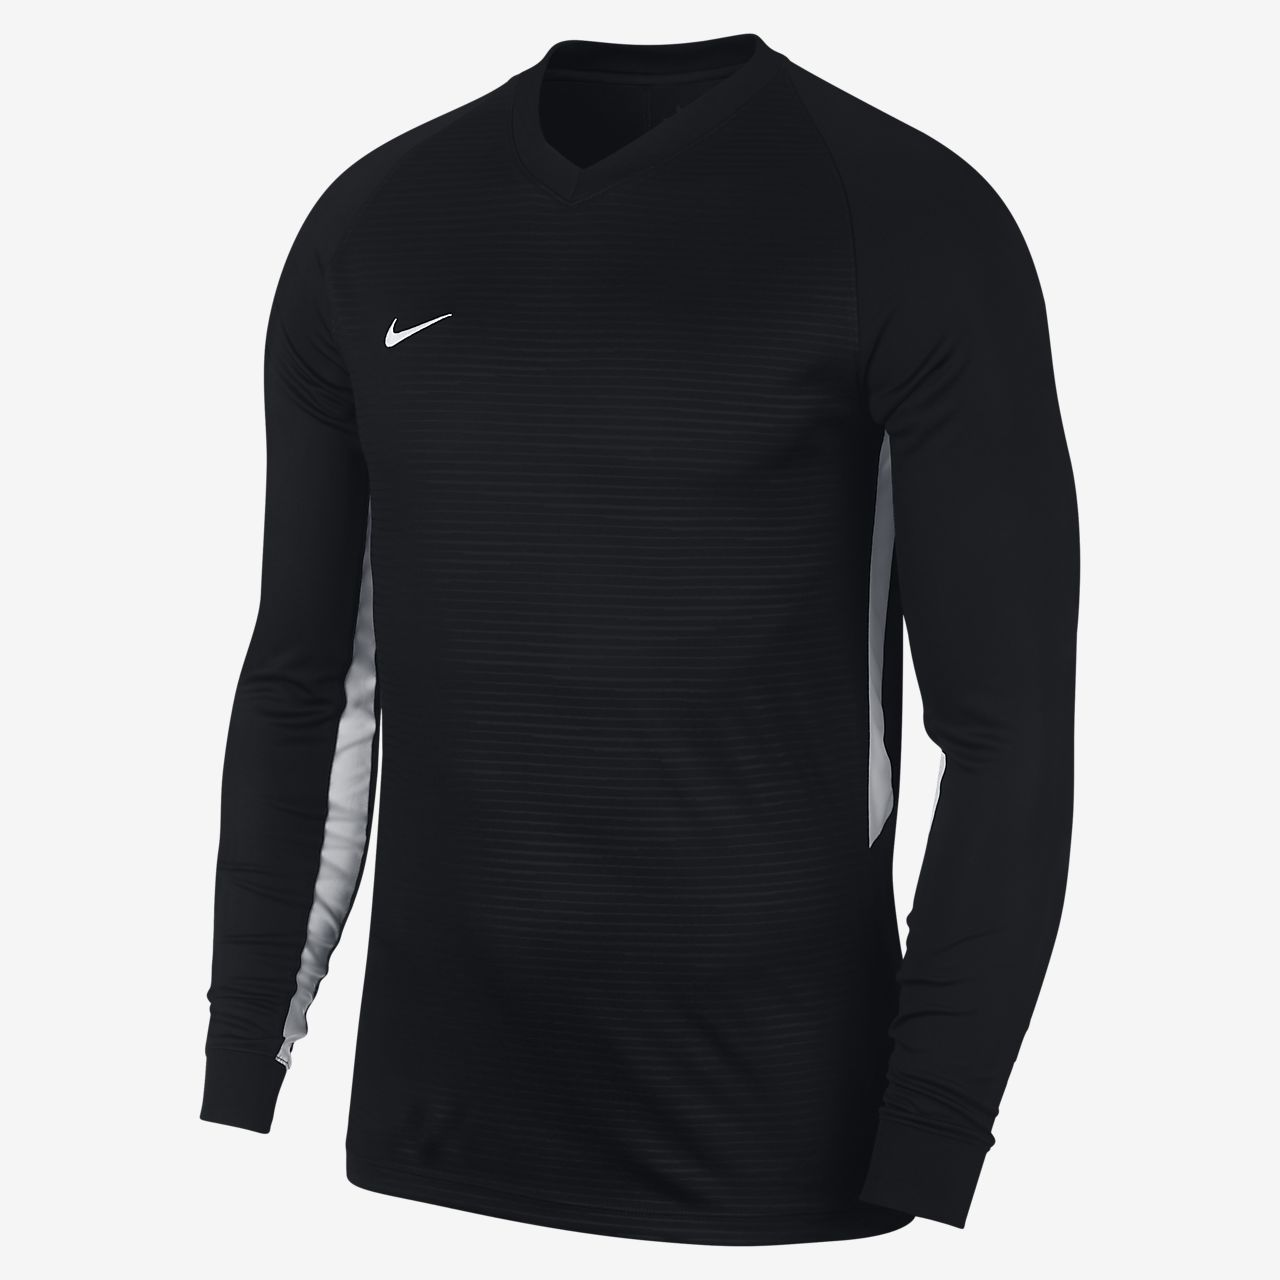 Nike Dri-FIT Tiempo Men's Long-Sleeve Soccer Jersey